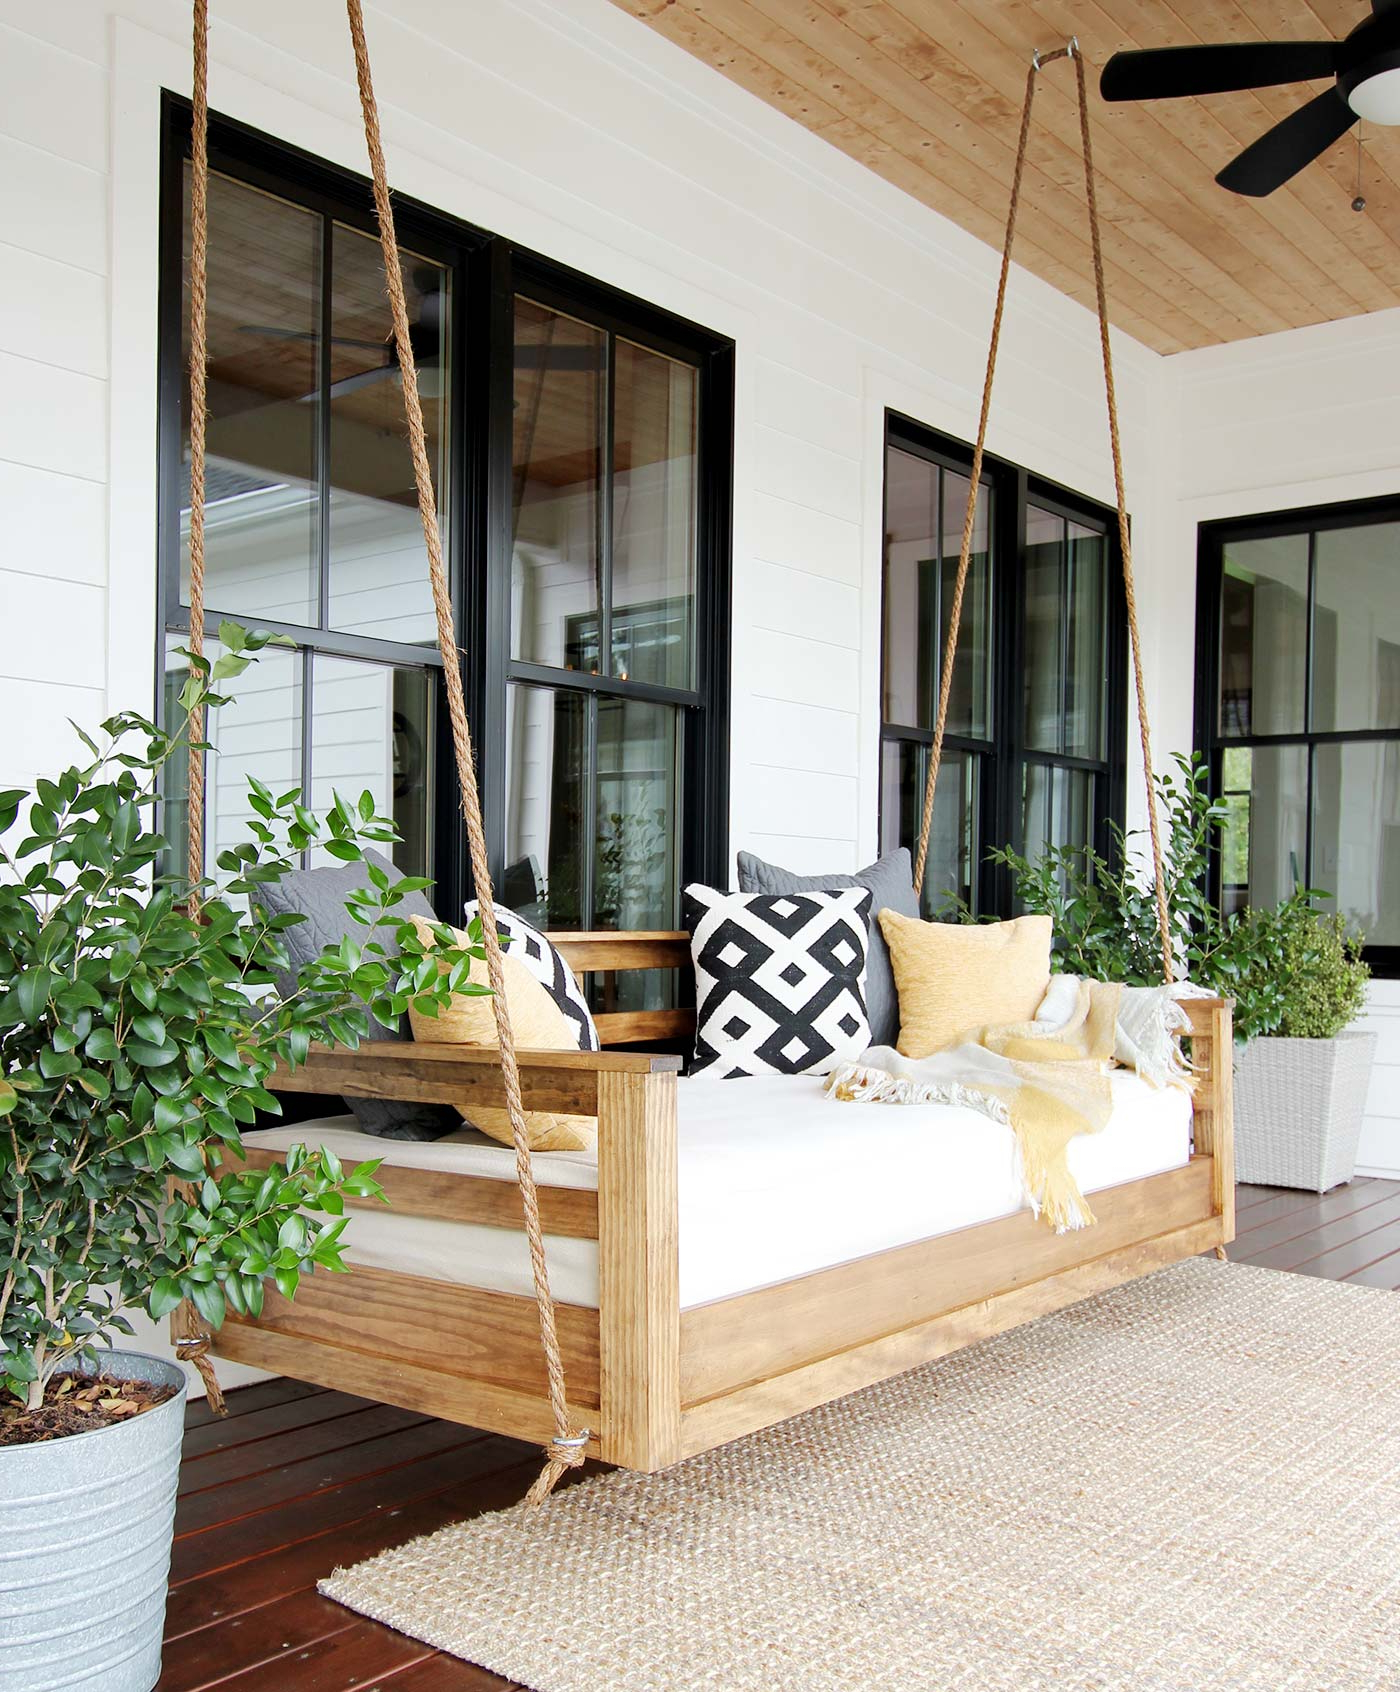 How To Build A Porch Swing Bed – Plank And Pillow Throughout Favorite Hanging Daybed Rope Porch Swings (View 19 of 30)